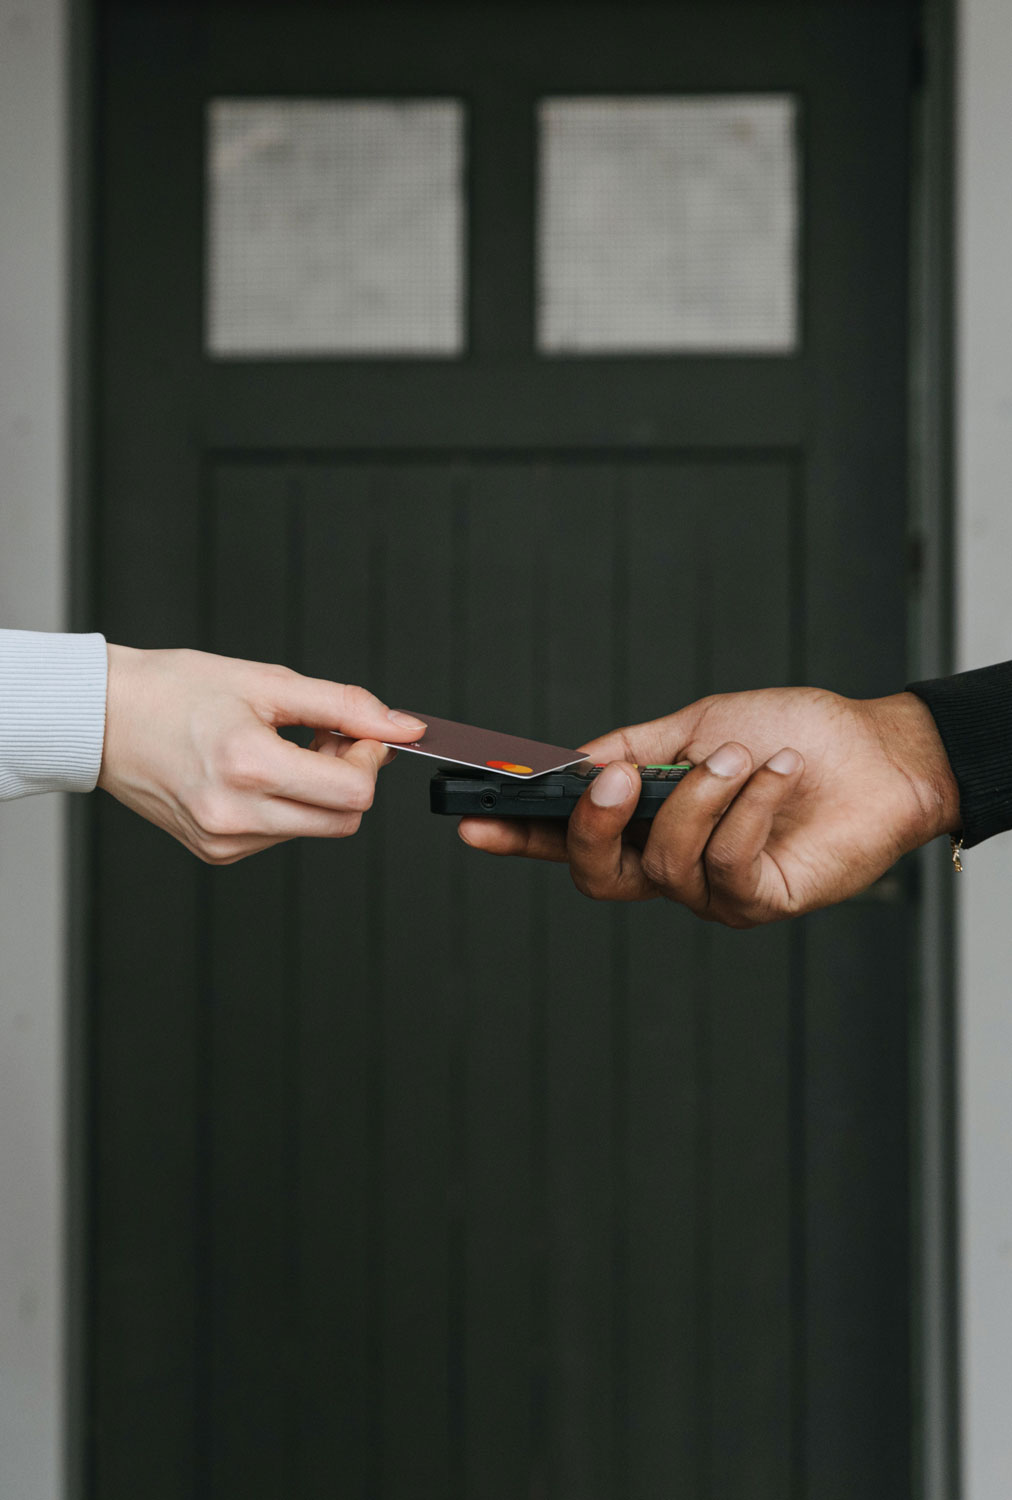 Transaction by card